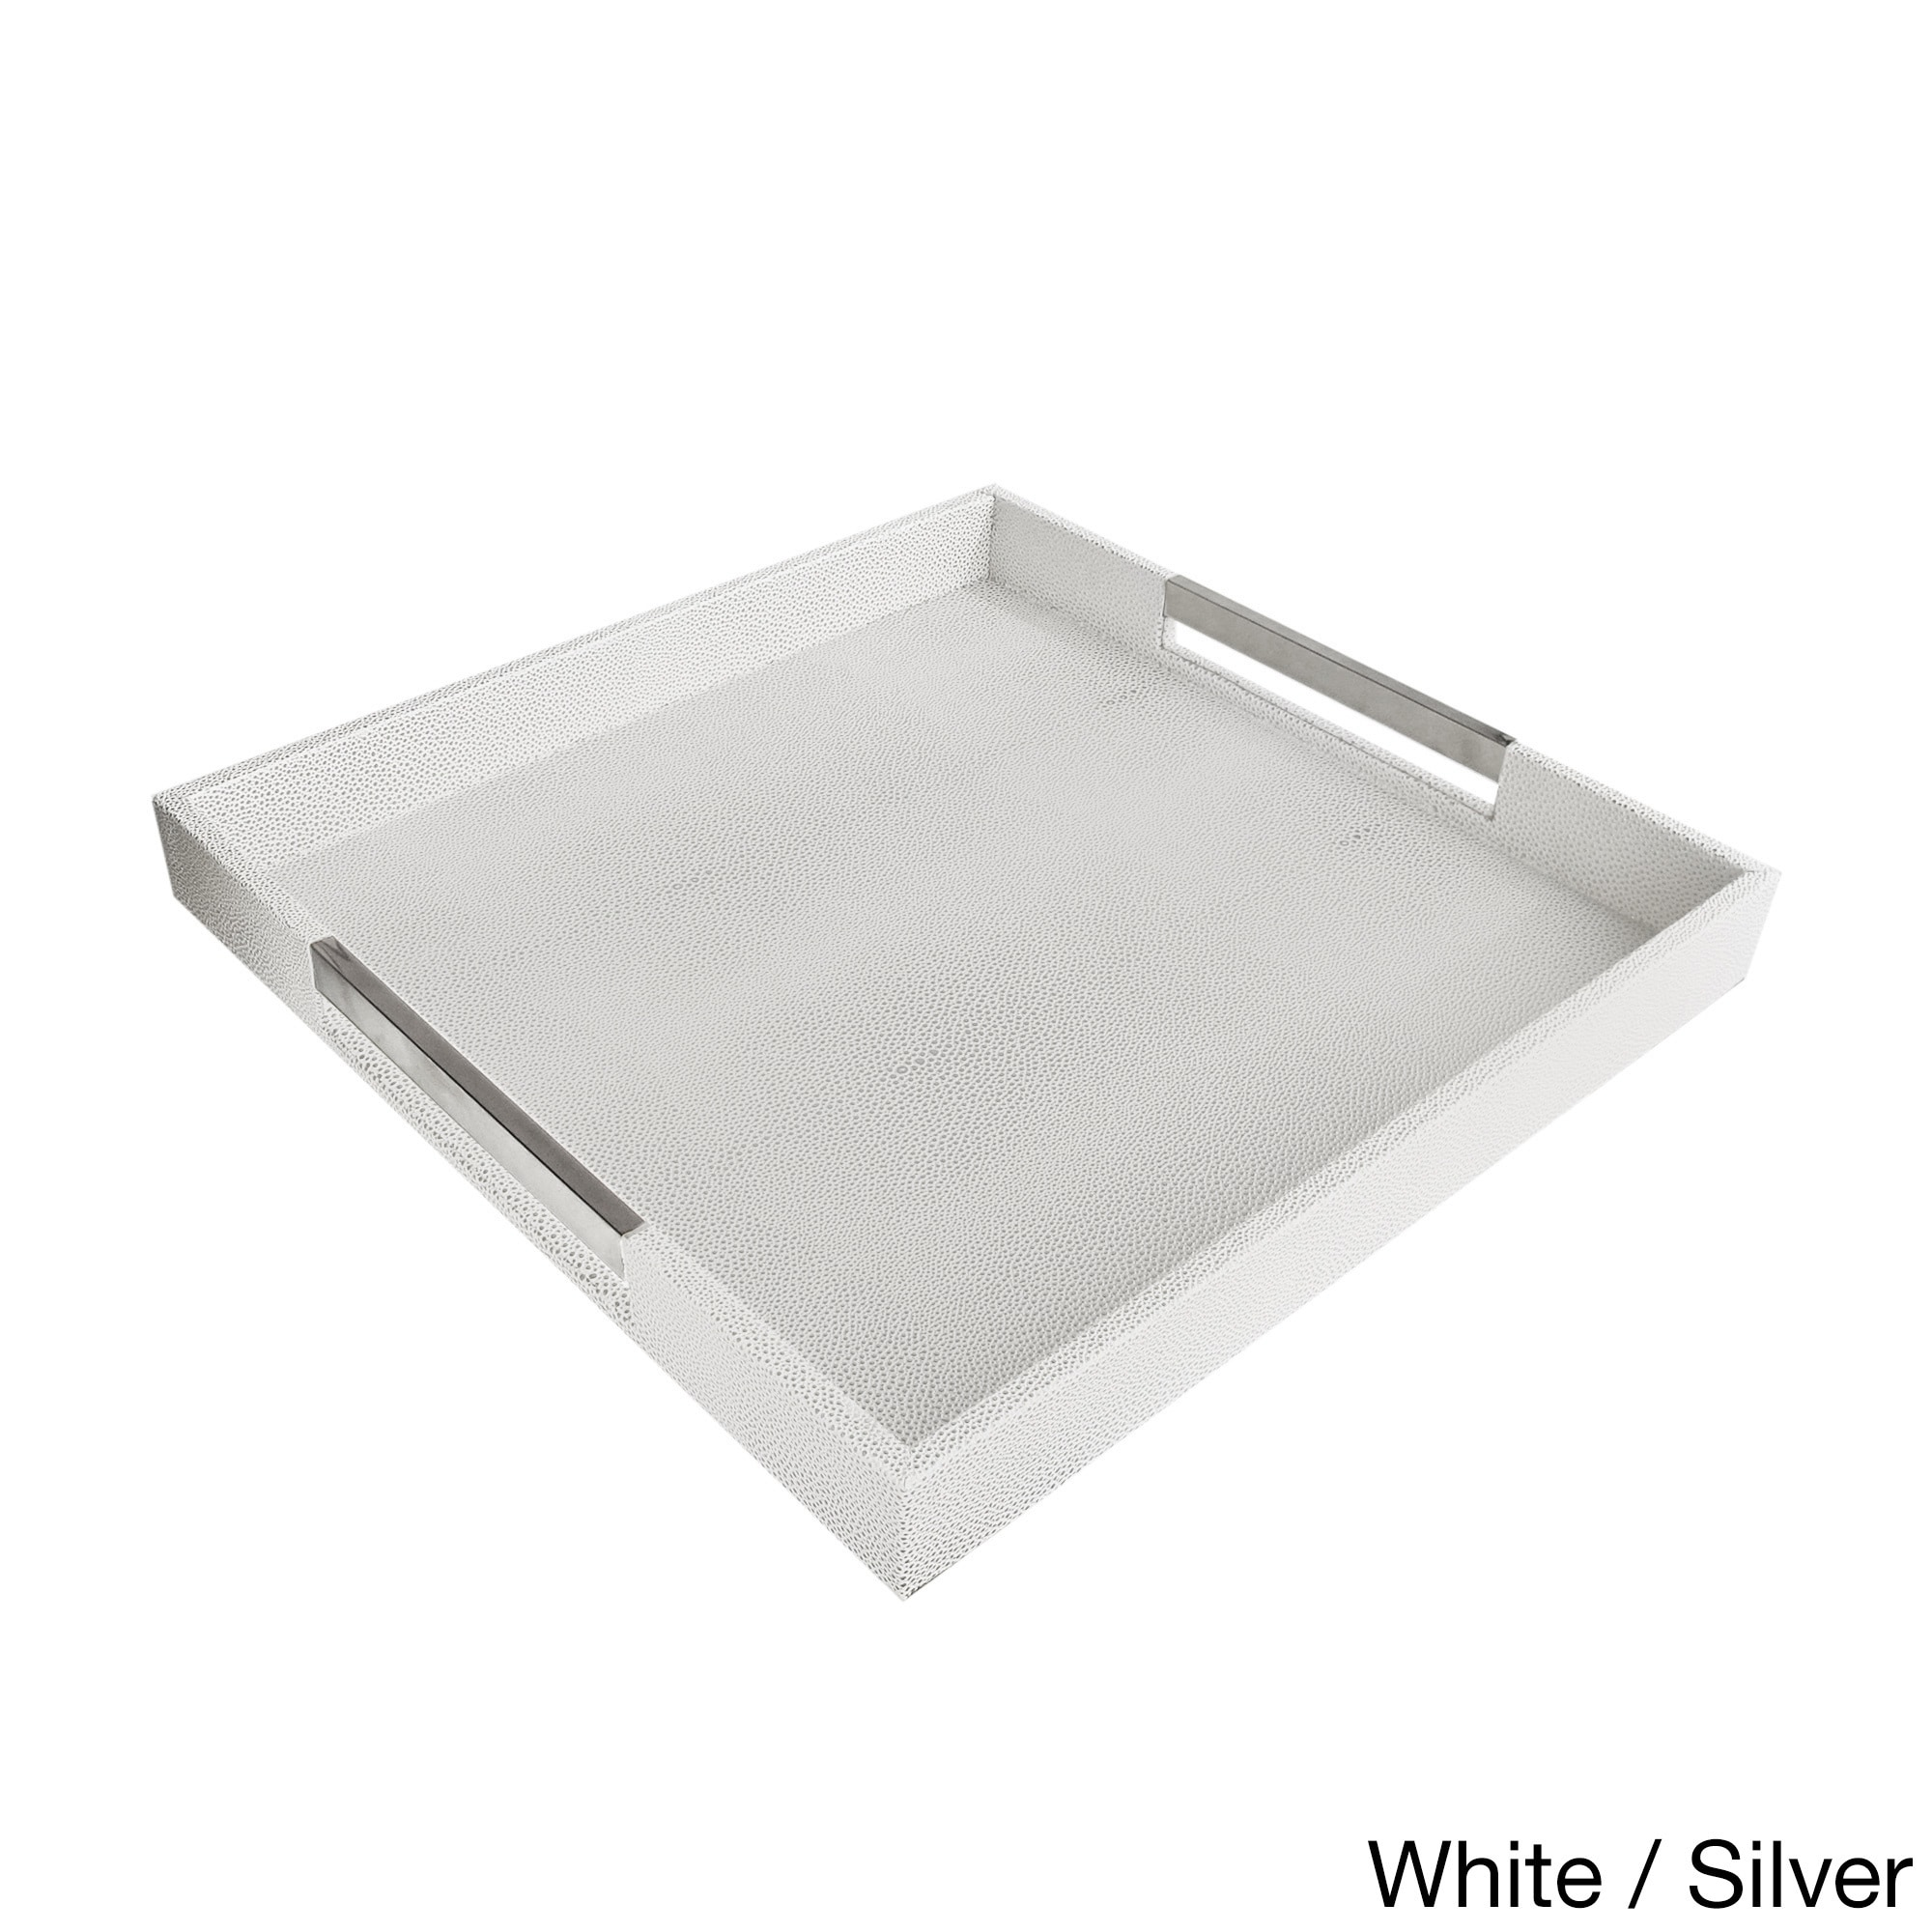 Accents By Jay Square Tray With Handles Overstock 11442119 Square Tray White With Silver Handles